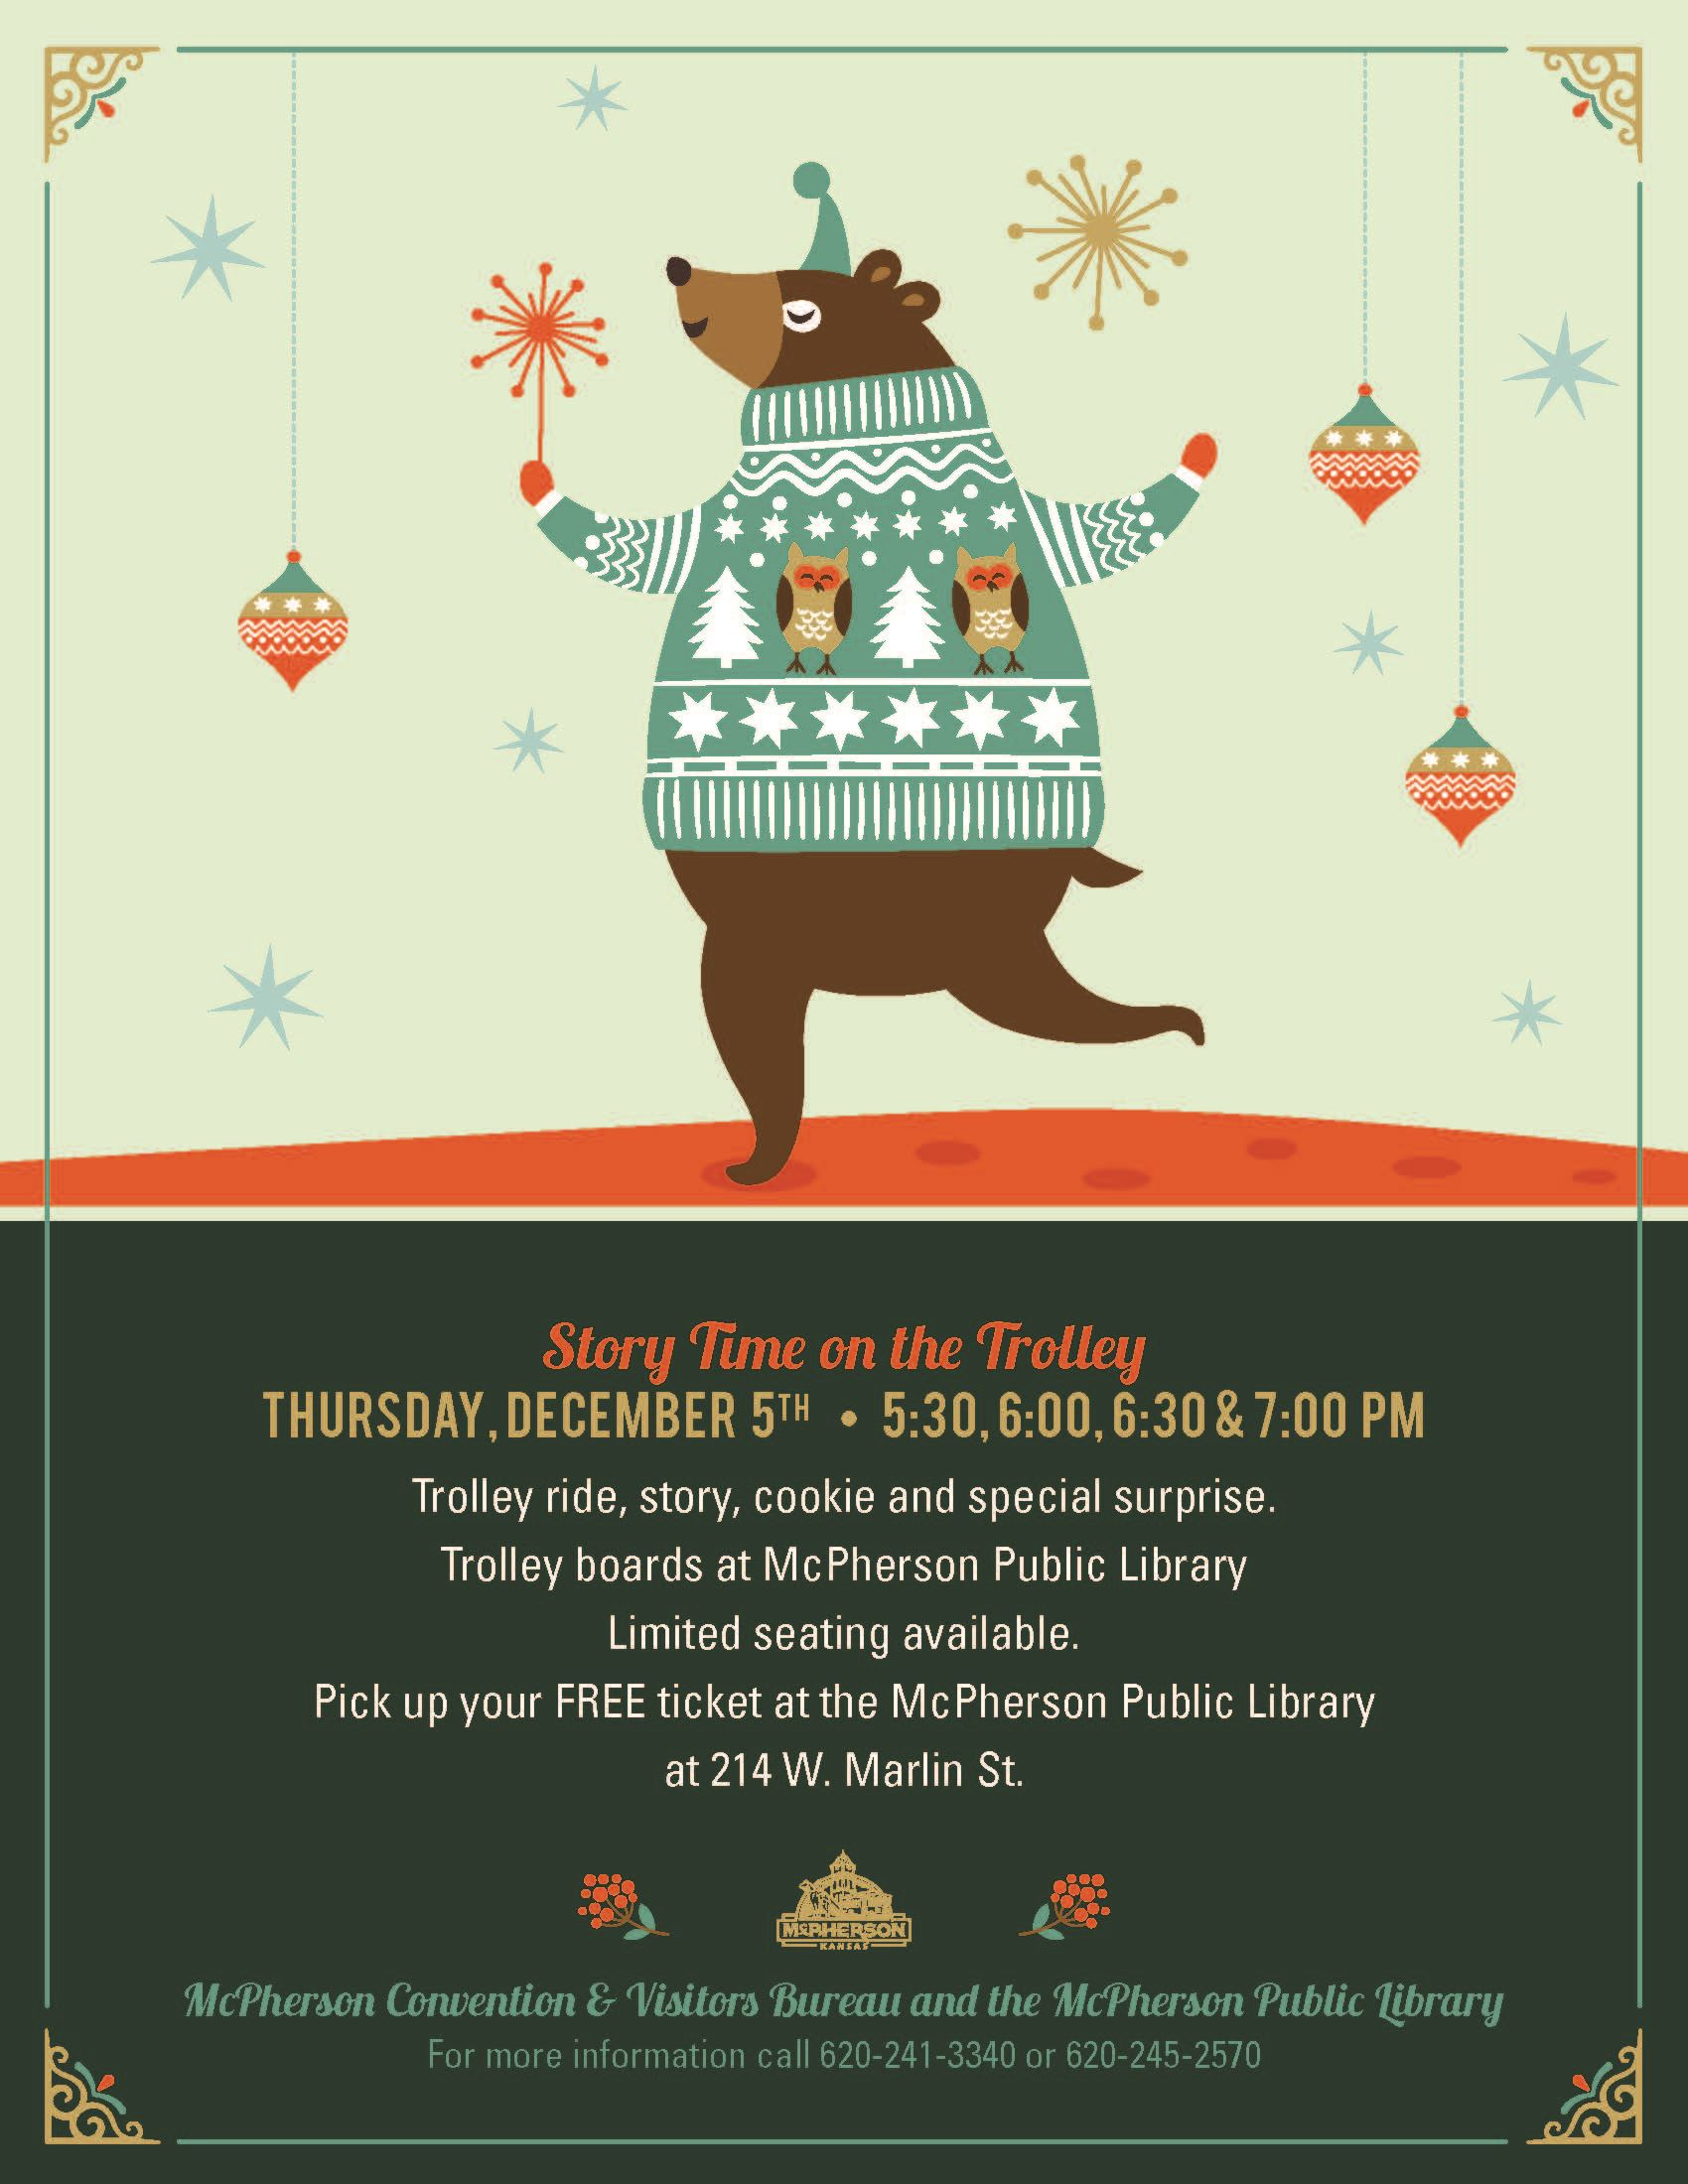 Poster using a cartoon bear to promote Story Time on the Trolley